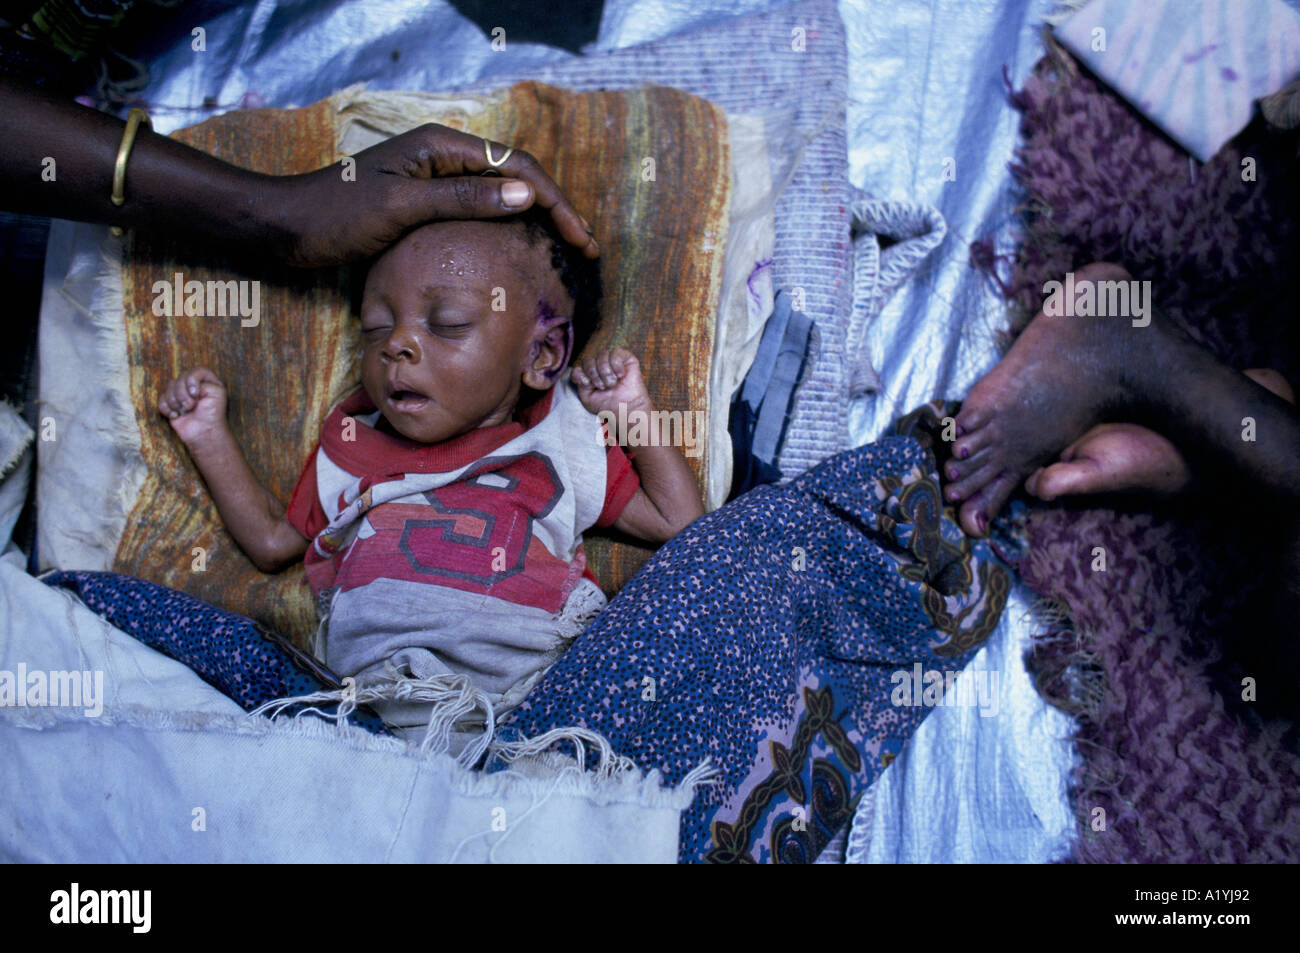 MALNOURISHED BABY AT OXFAM FEEDING CENTRE IN SINJE LIBERIA OCTOBER 1996 1996 - Stock Image